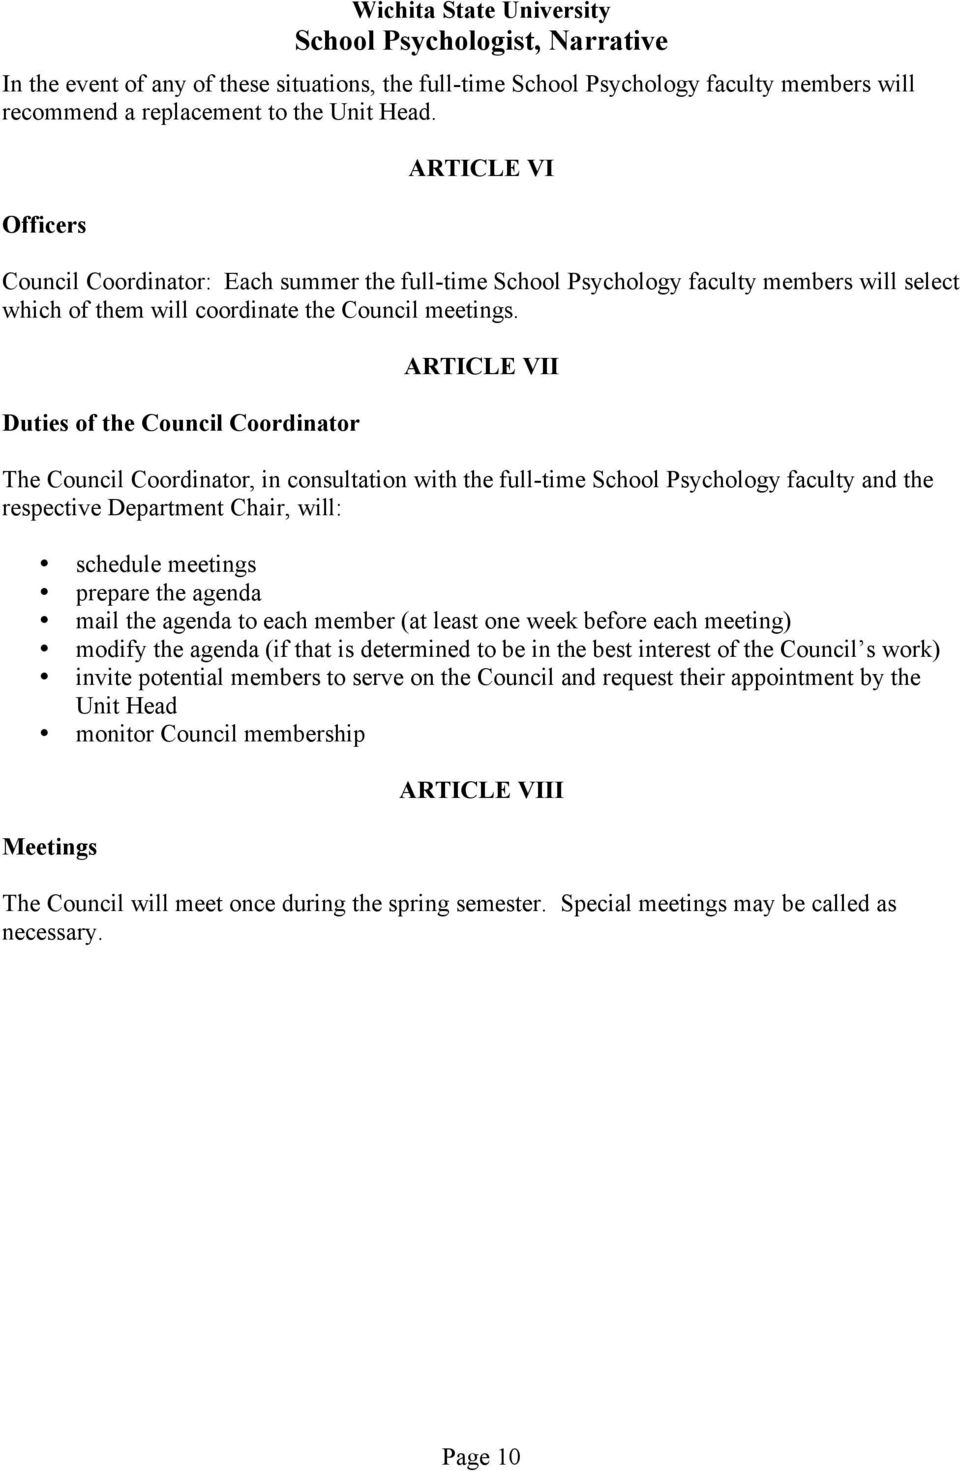 Duties of the Council Coordinator ARTICLE VII The Council Coordinator, in consultation with the full-time faculty and the respective Department Chair, will: schedule meetings prepare the agenda mail